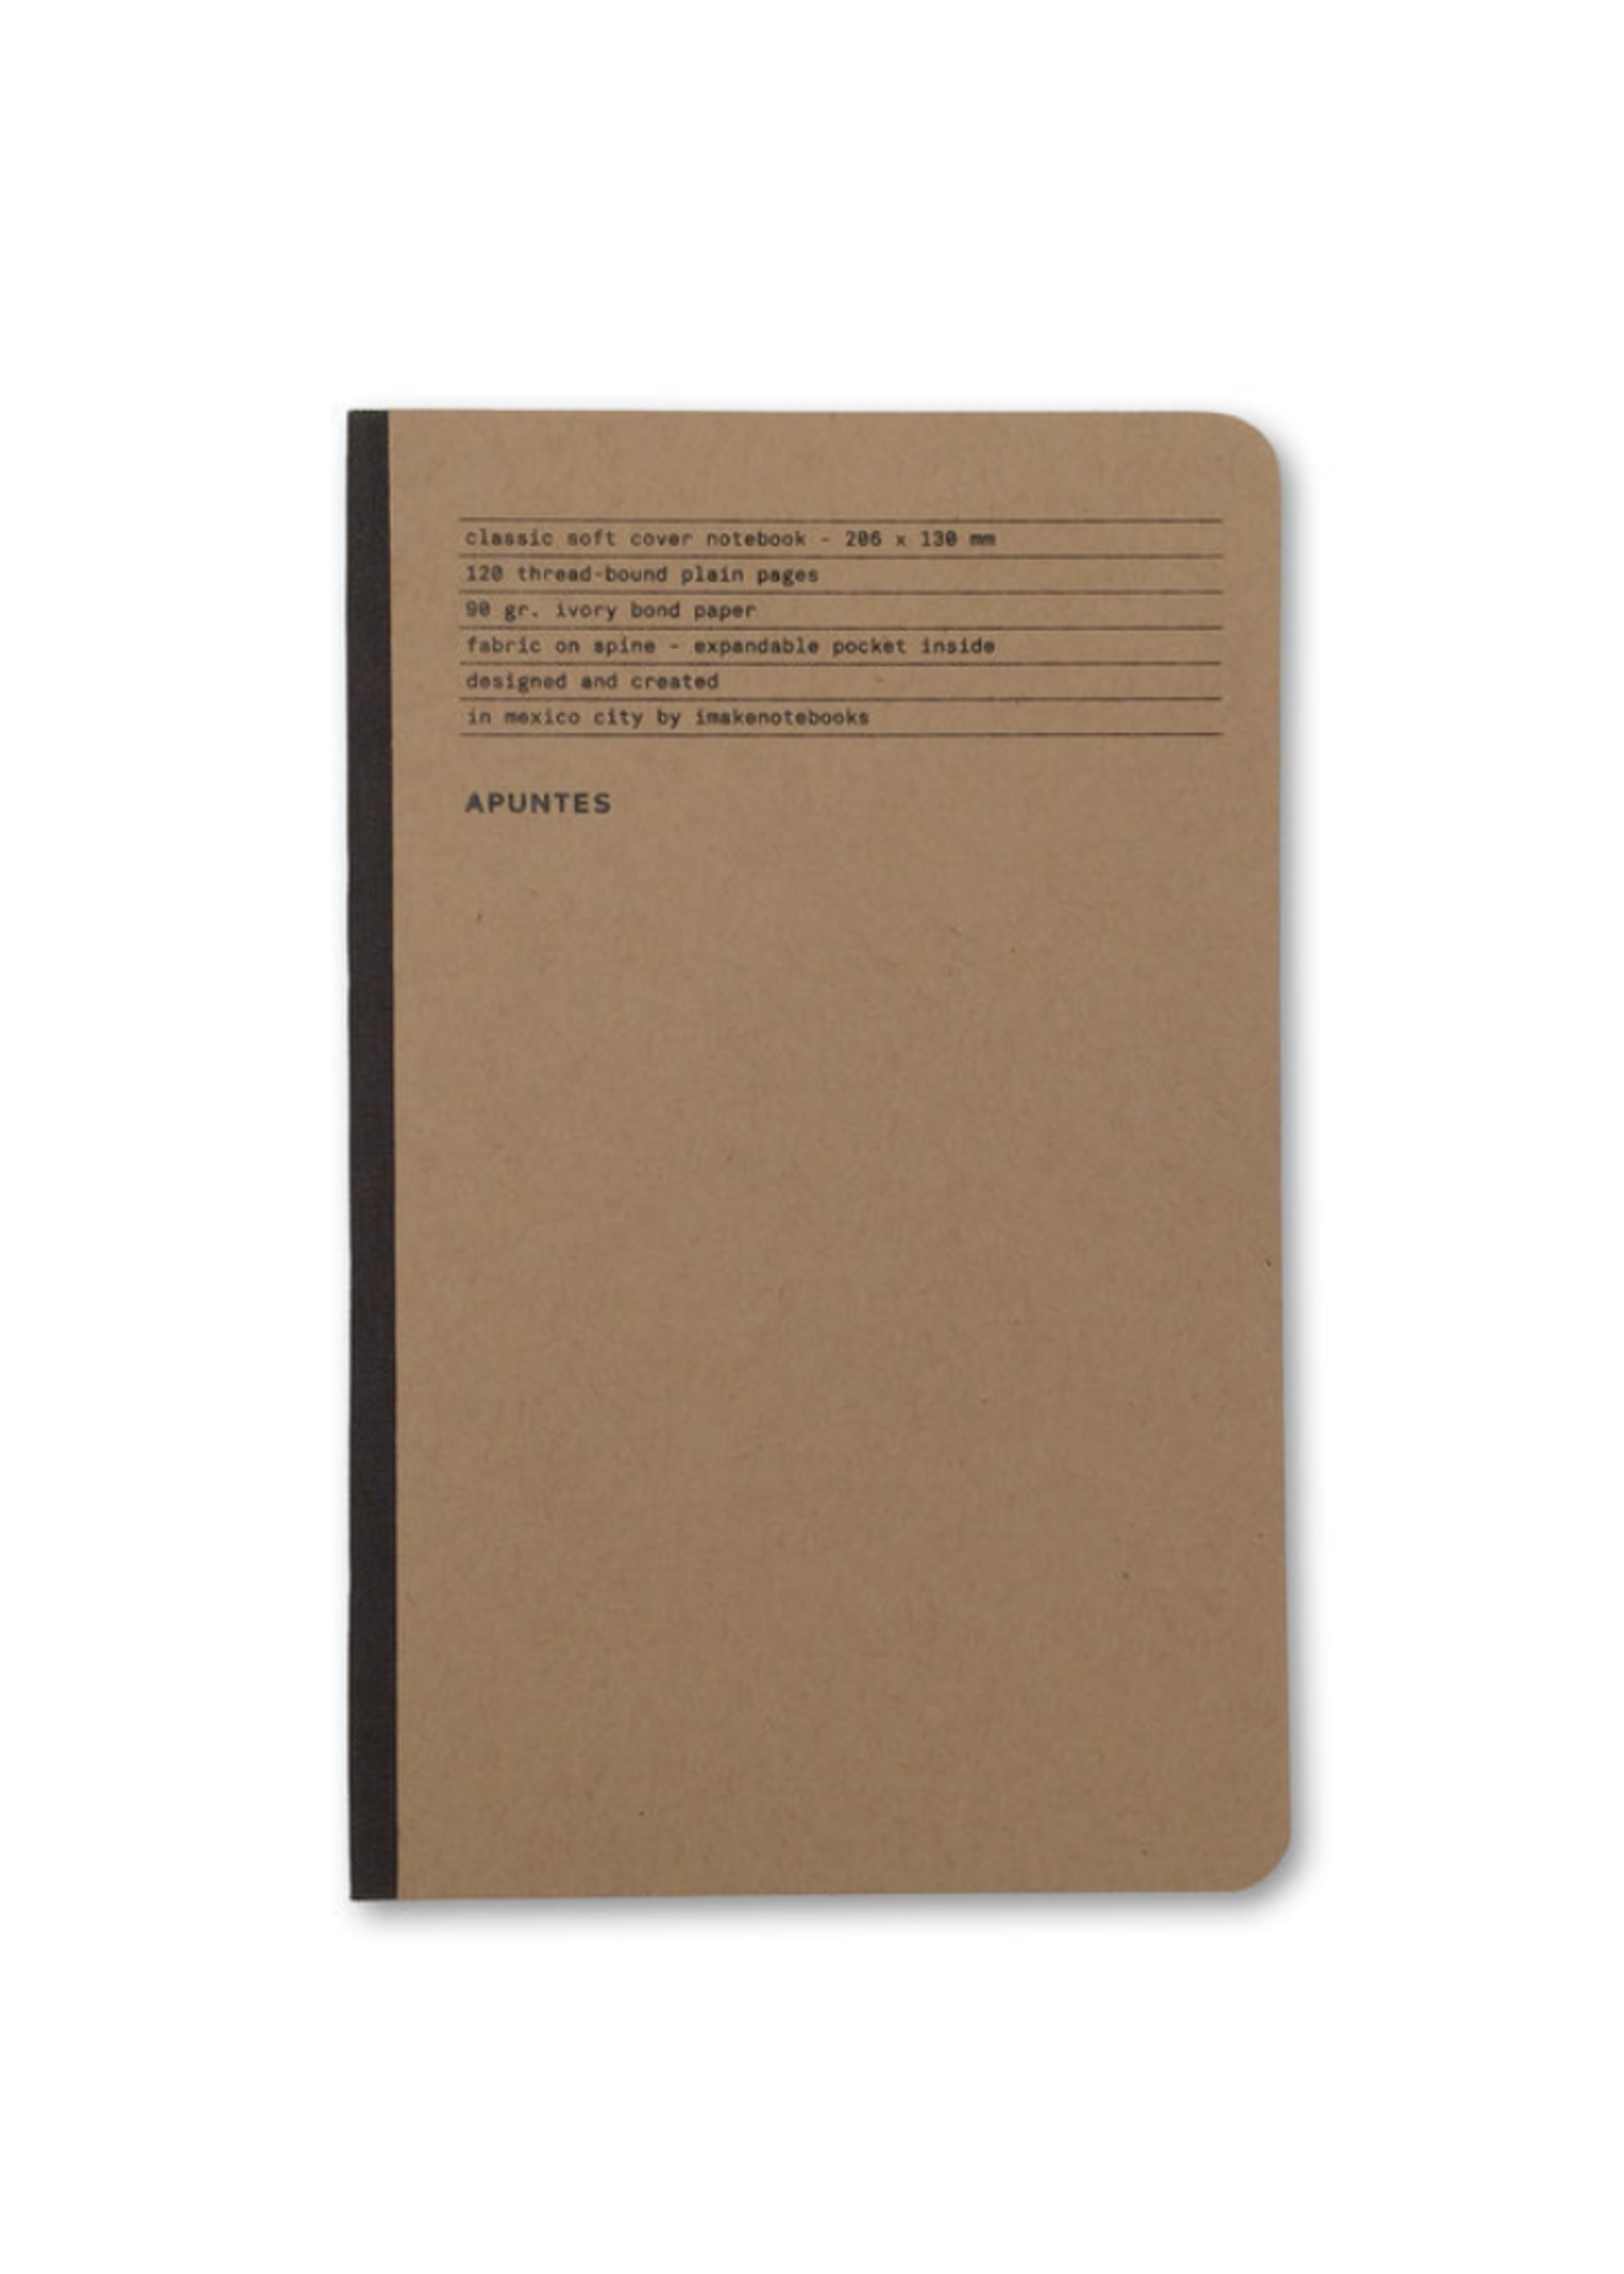 Apuntes Soft Cover Jute Lomo Gris Oscuro Notebook